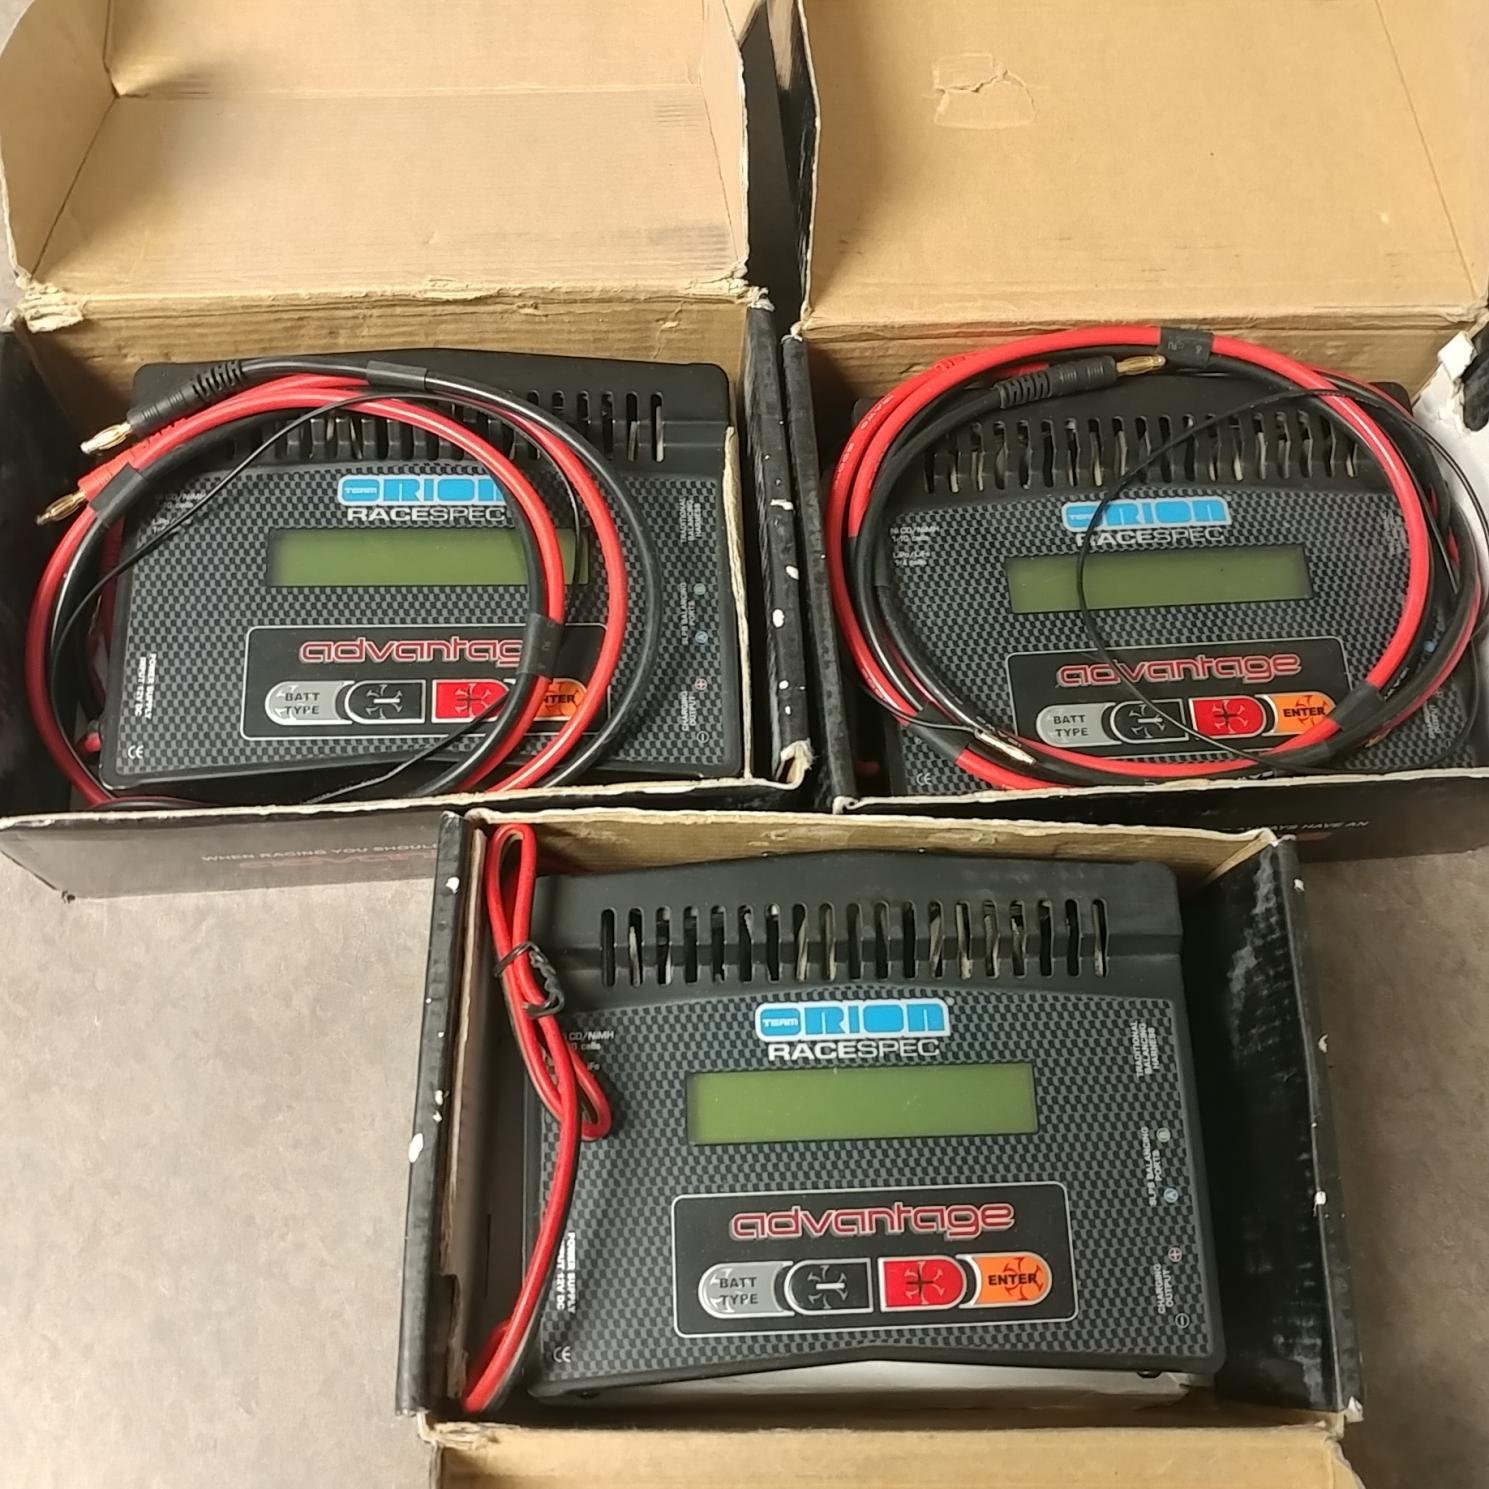 orion race spec advantage chargers, 25 amp power supply ...